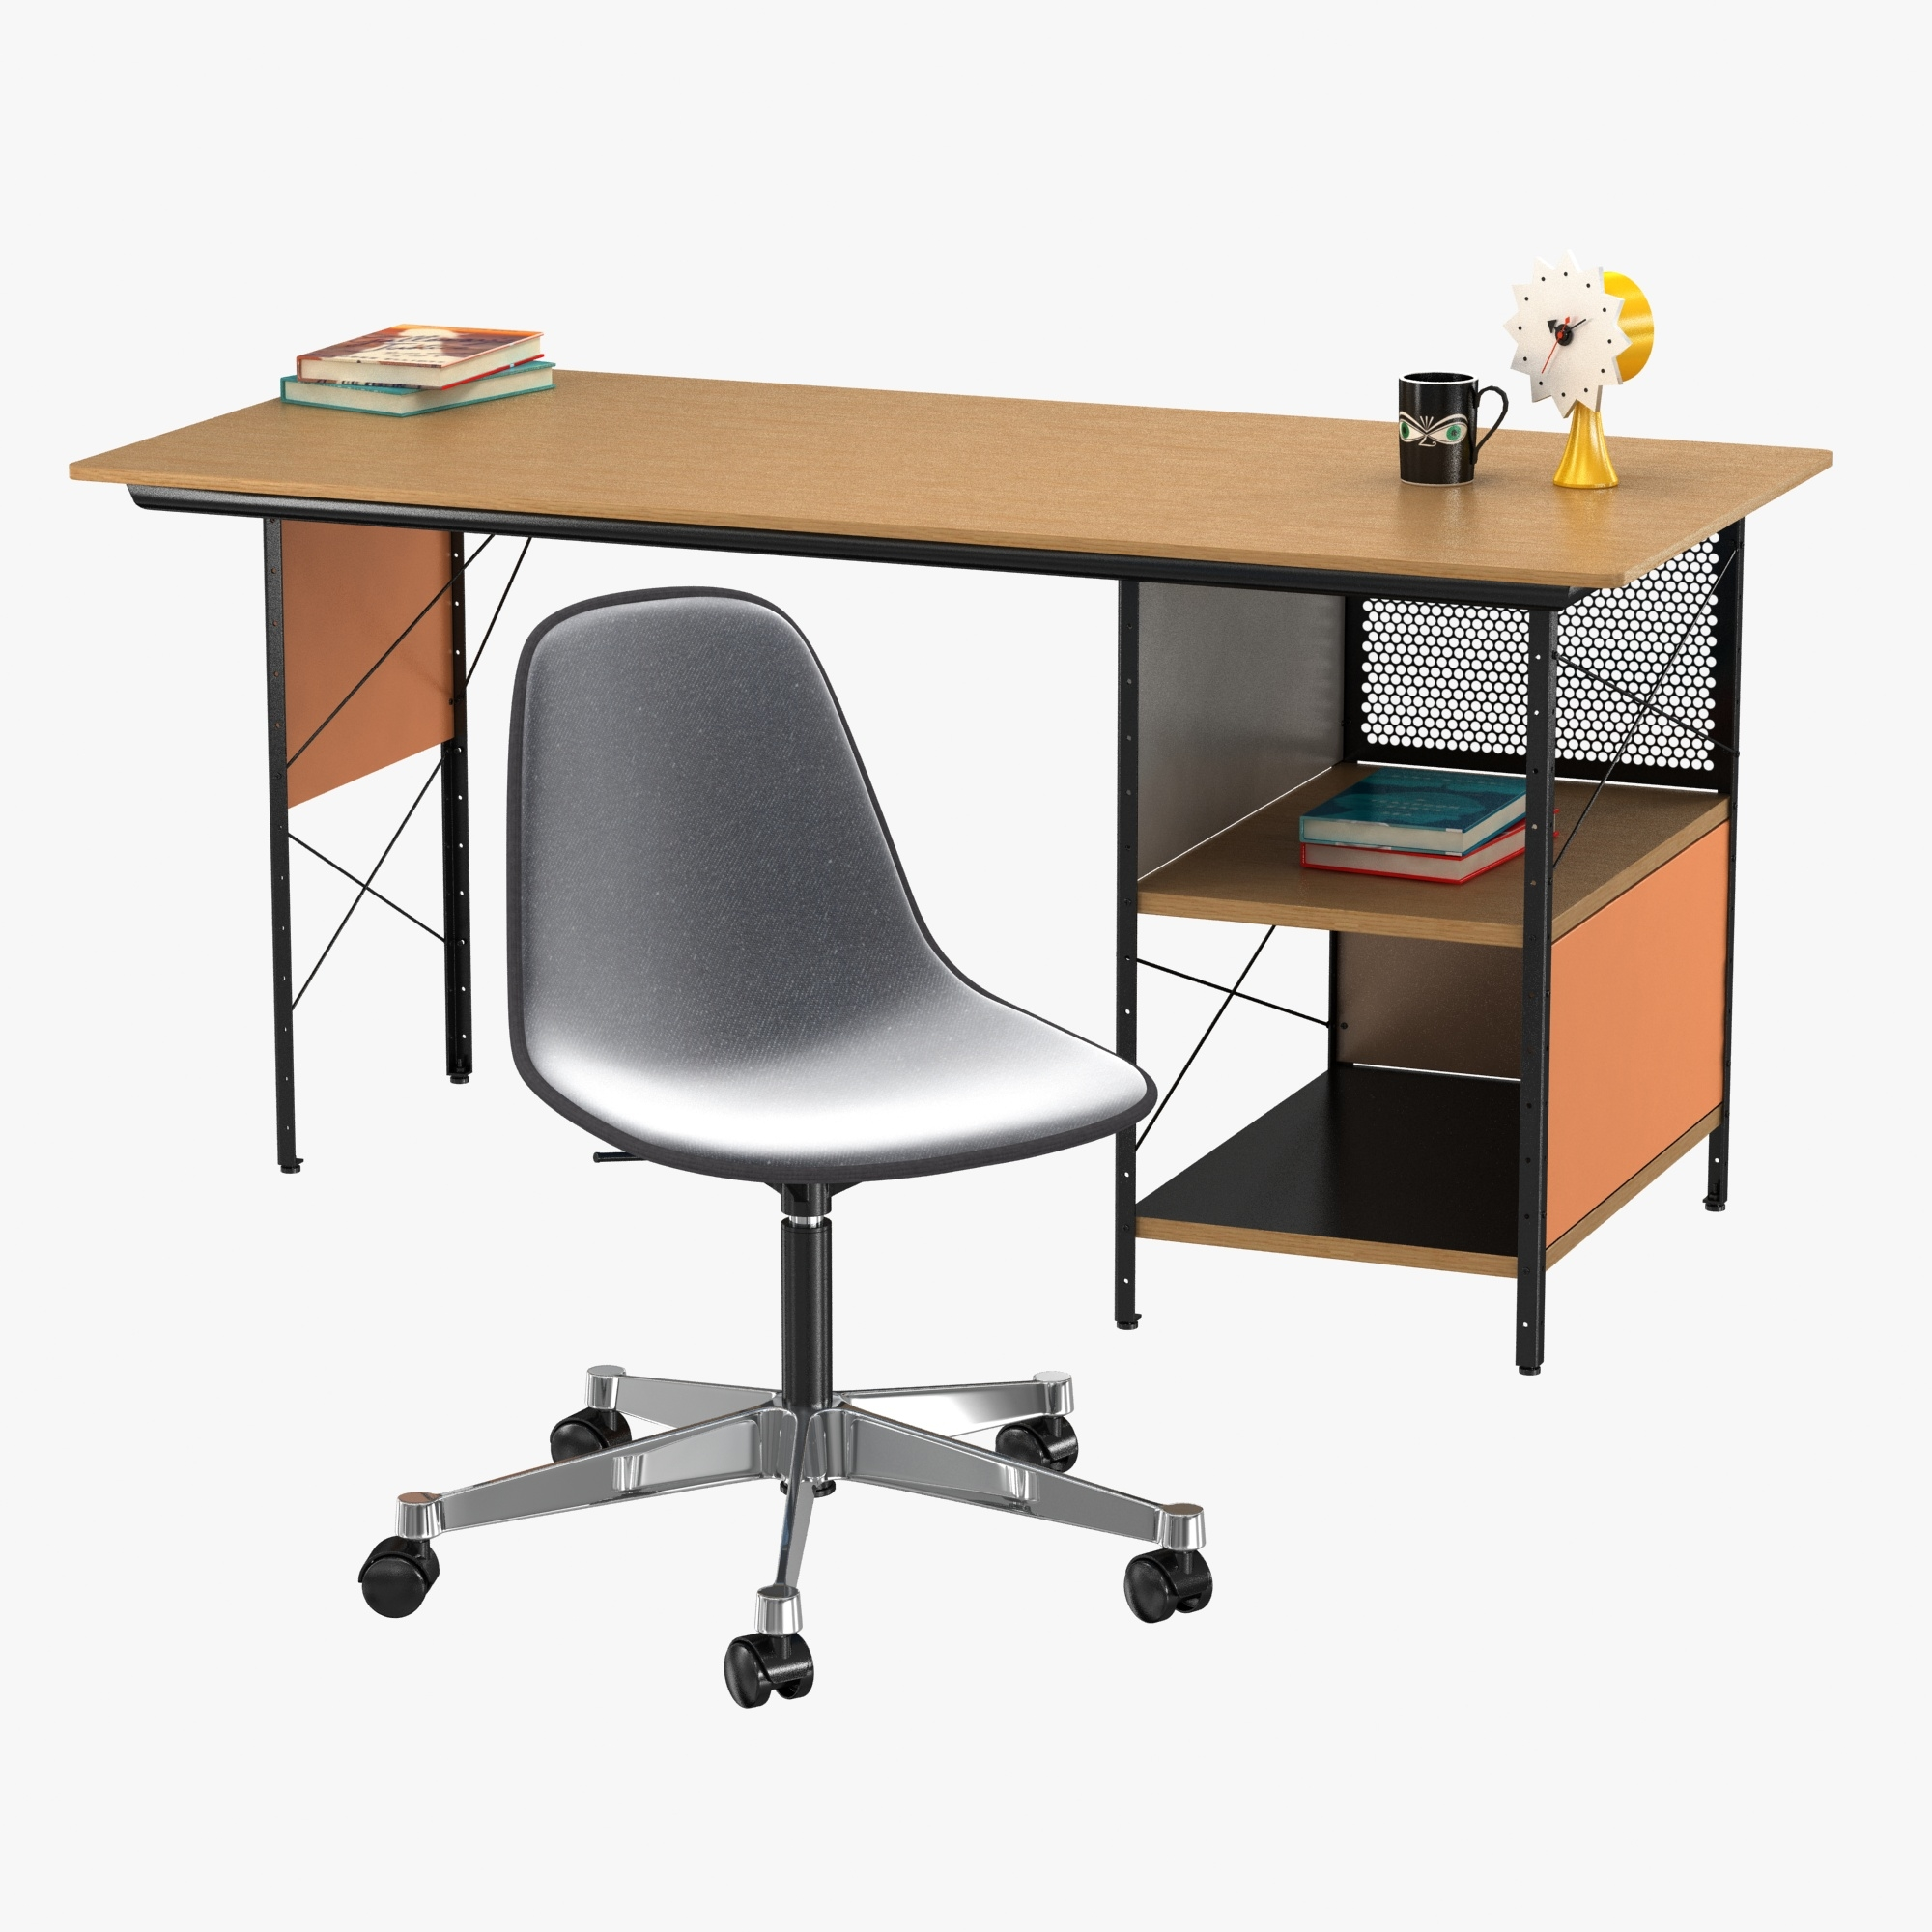 Admirable Vitra Eames Plastic Chair And Edu Desk Unit Forskolin Free Trial Chair Design Images Forskolin Free Trialorg